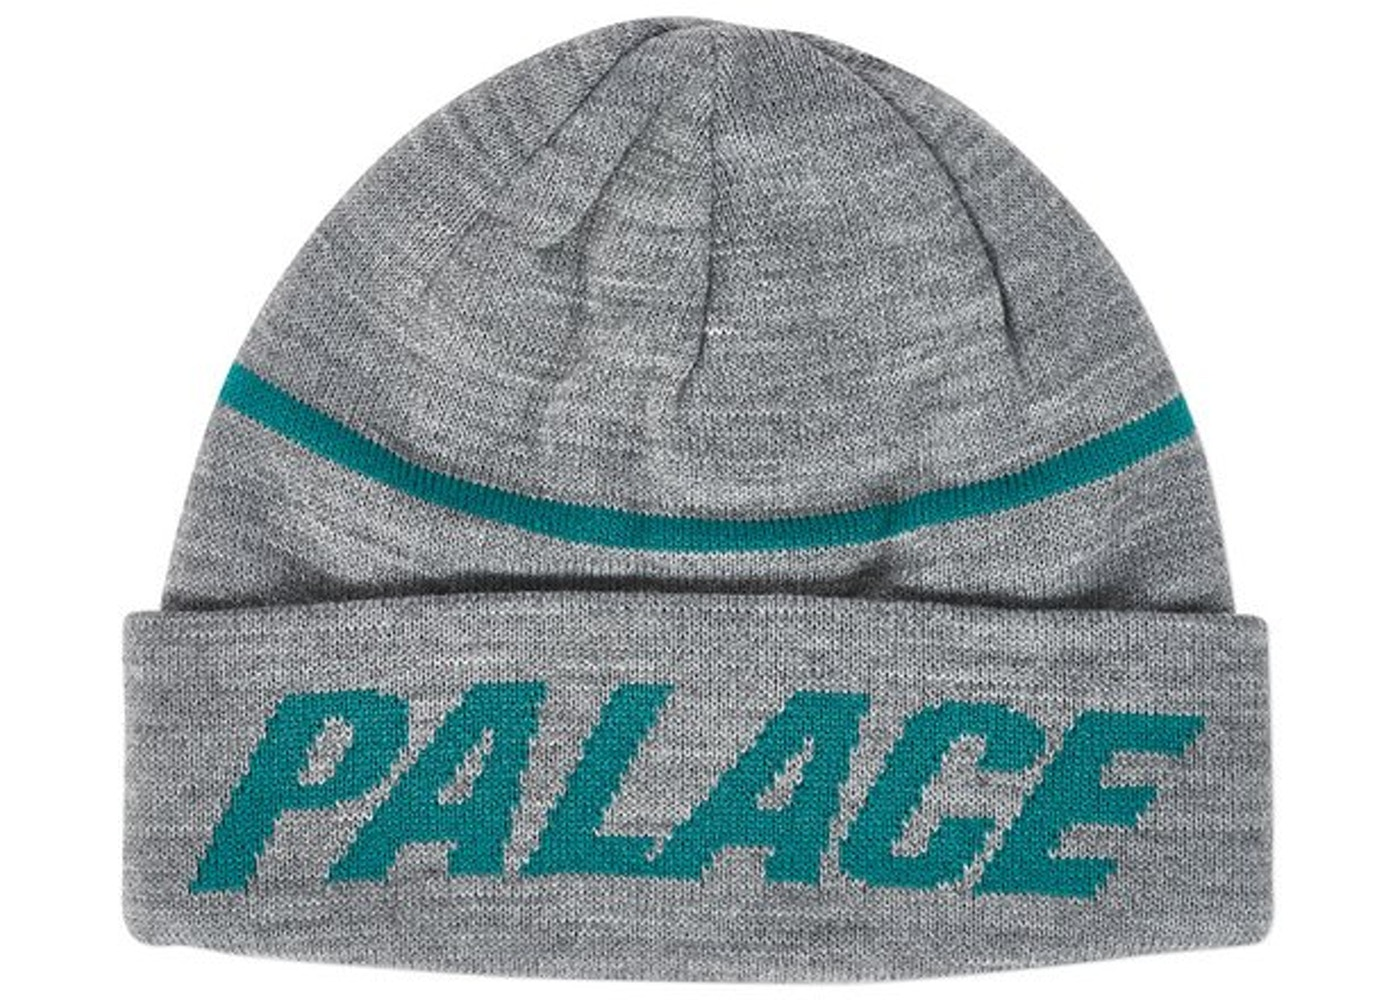 04699c7a1c7 Palace Headwear - Buy   Sell Streetwear